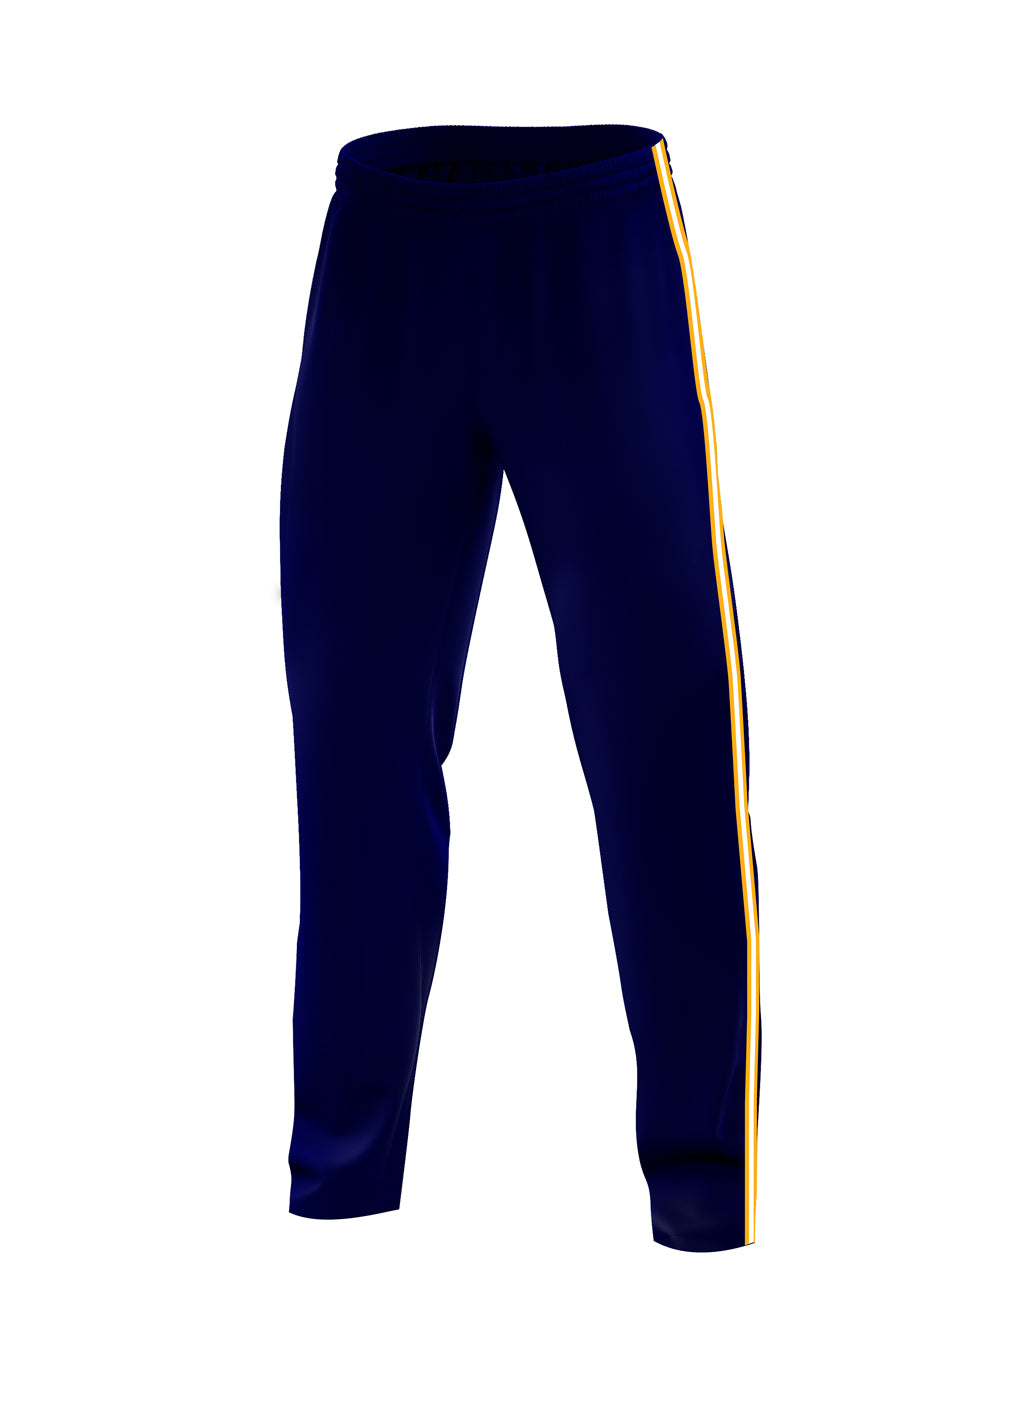 Northampton Community Rowing Team Wind Pants